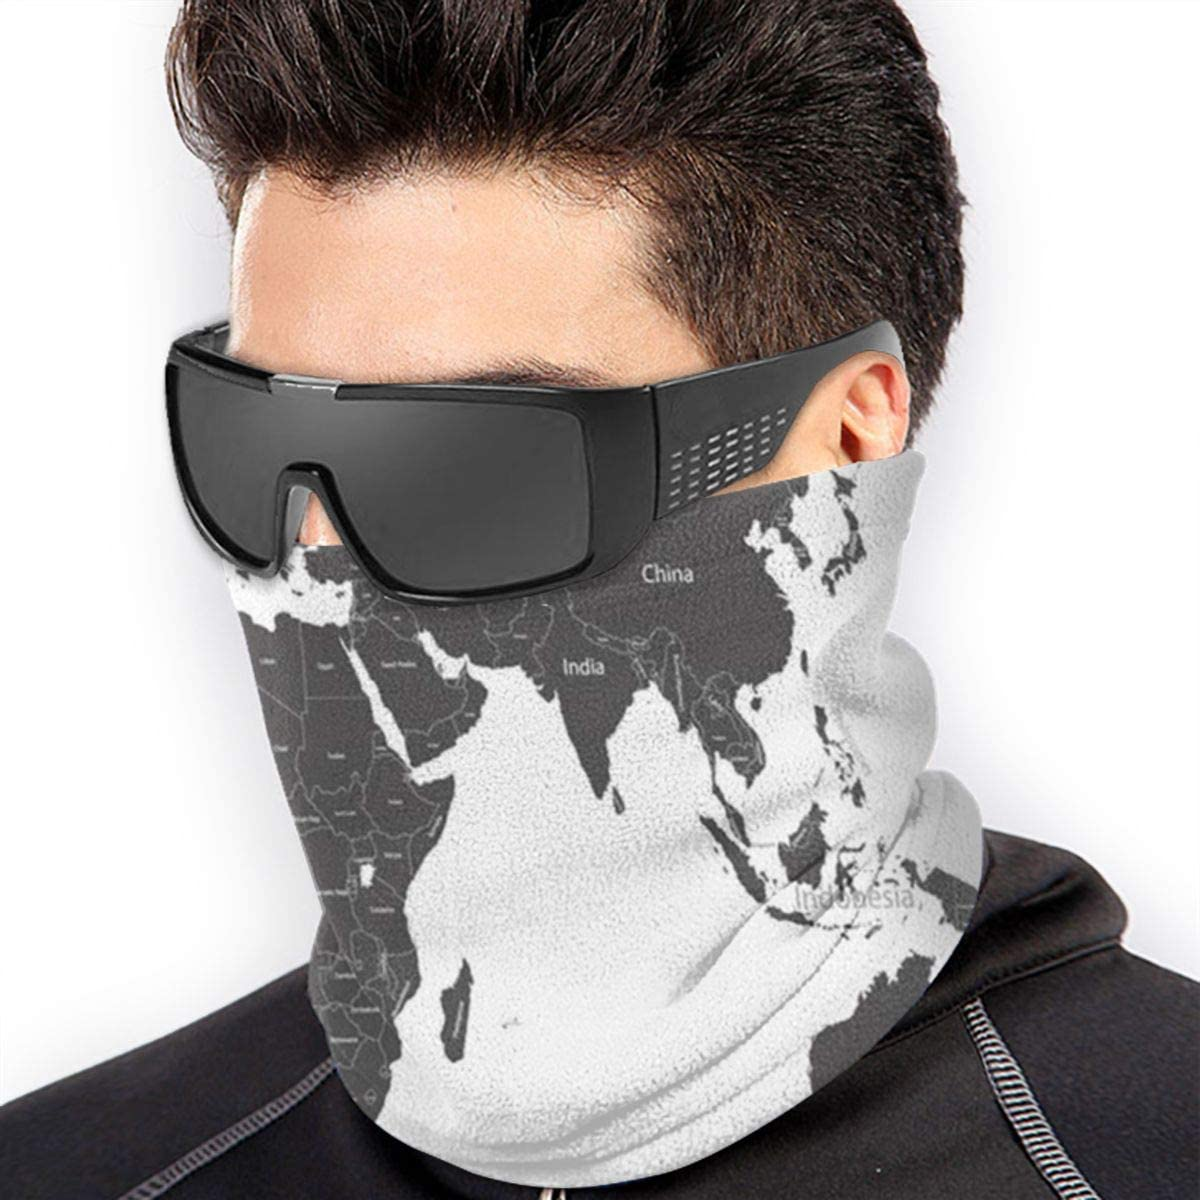 World Map Country Names Education Unisex Winter Fleece Neck Warmer Gaiters Hairband Cold Weather Tube Face Mask Thermal Neck Scarf 9.8x11.8 inch